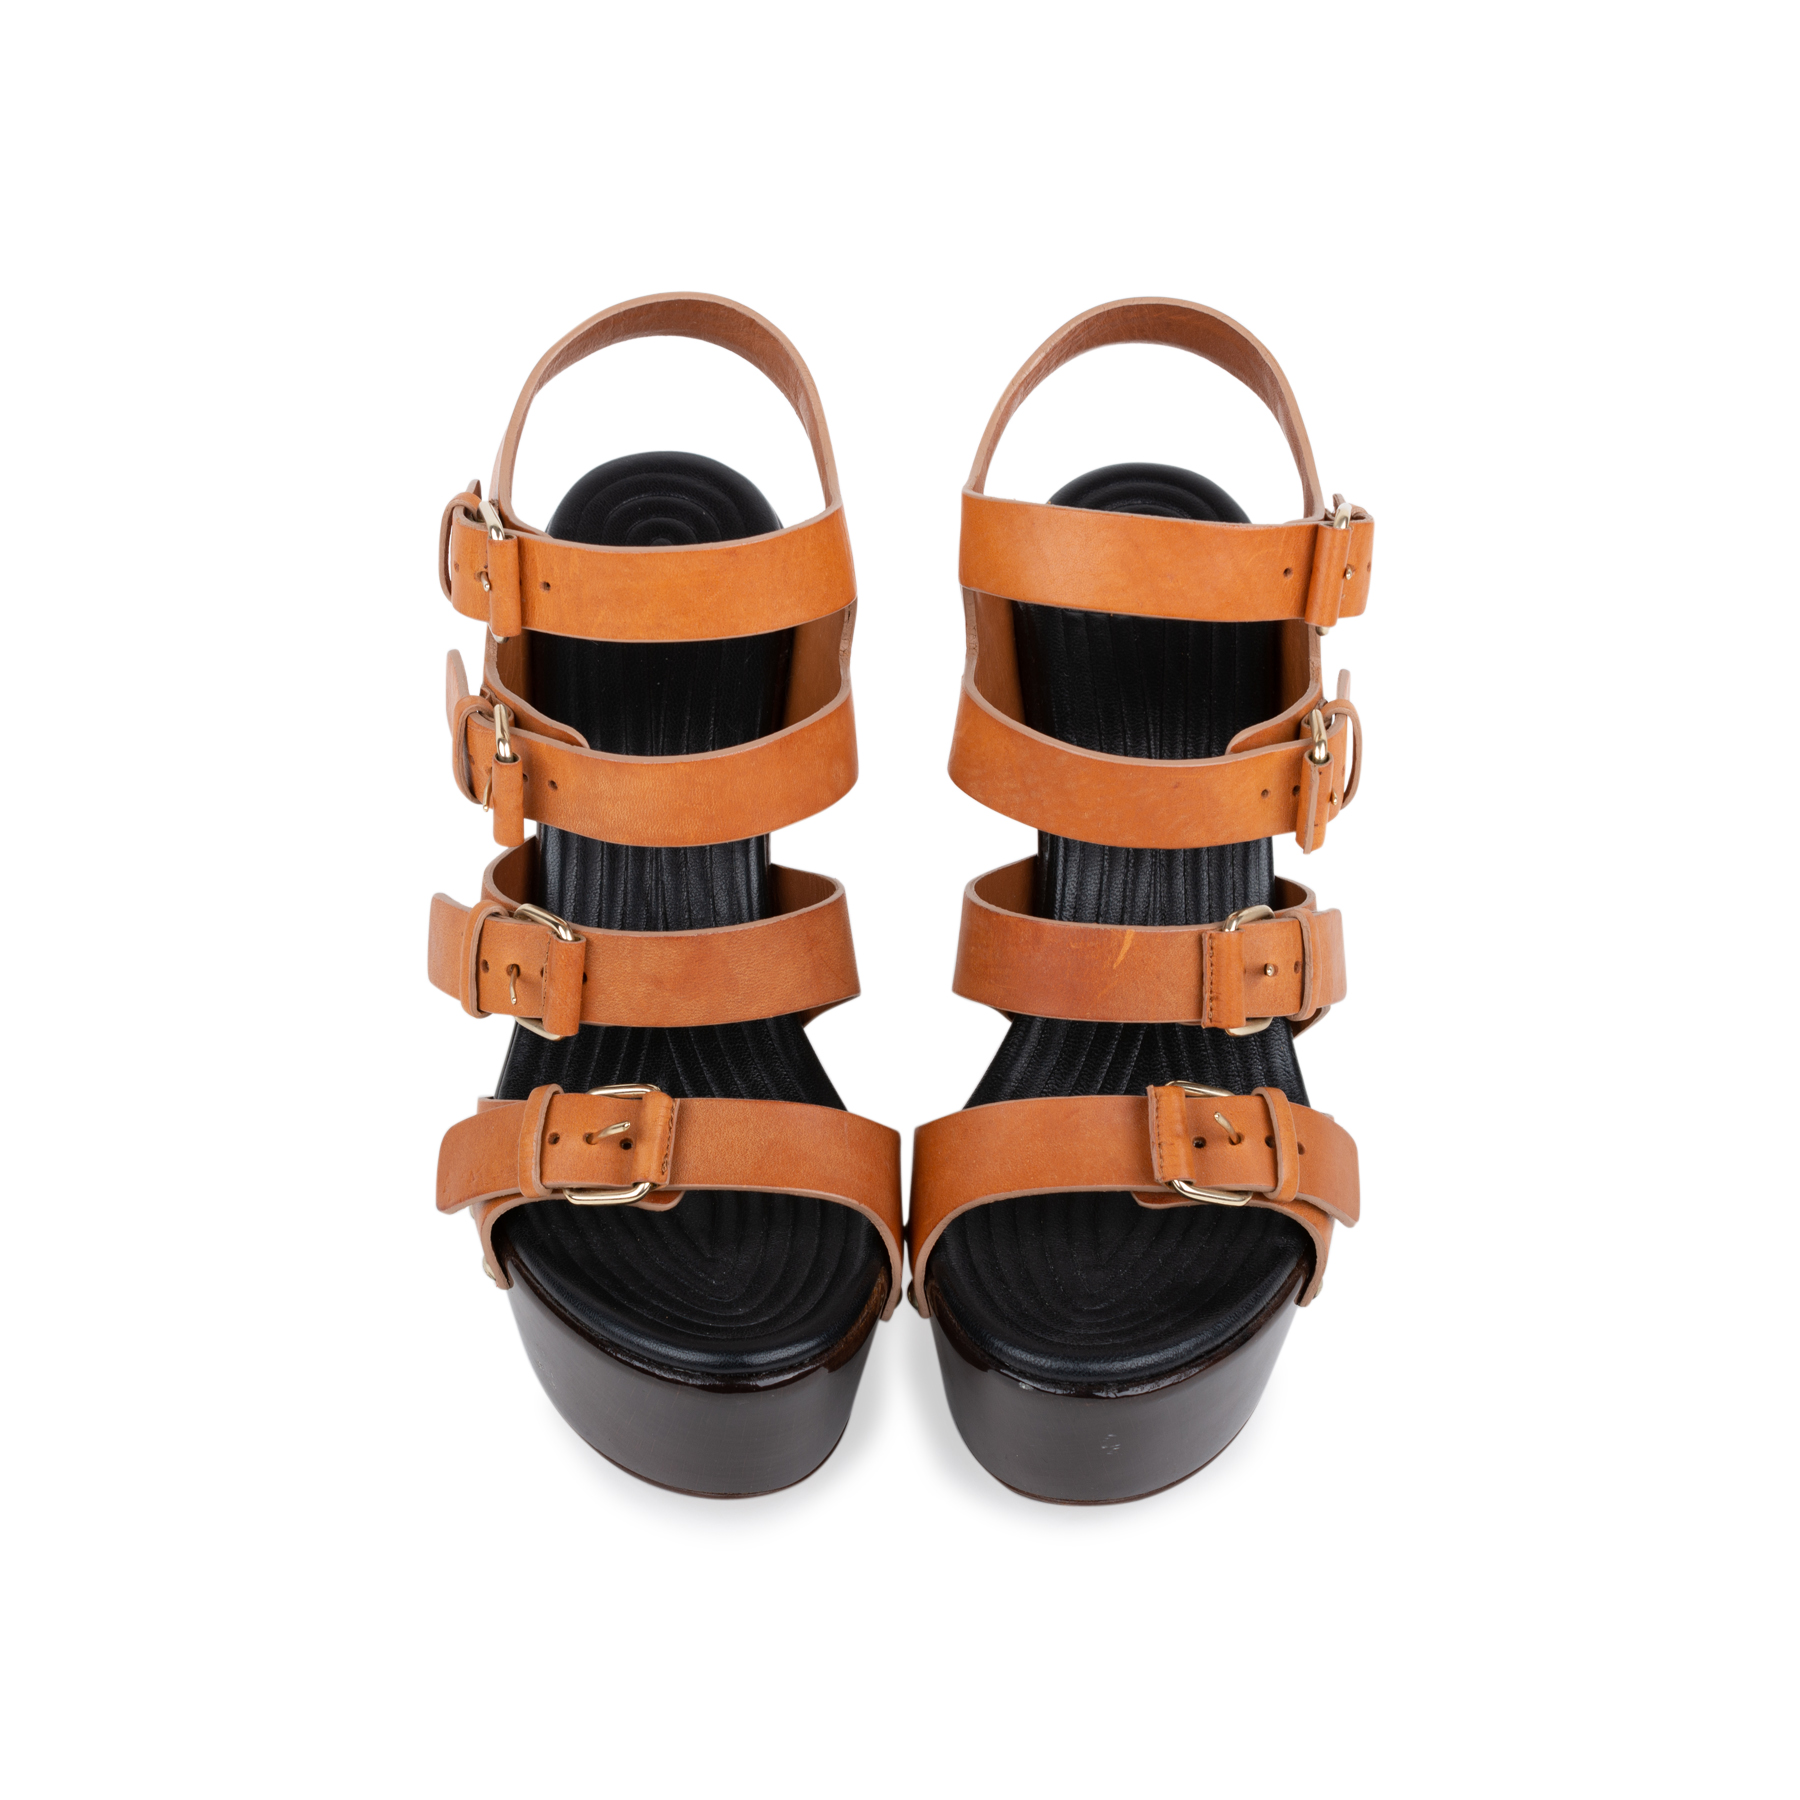 8a84b0bb8d Authentic Second Hand Givenchy Studded Platform Sandals (PSS-547-00007) -  THE FIFTH COLLECTION